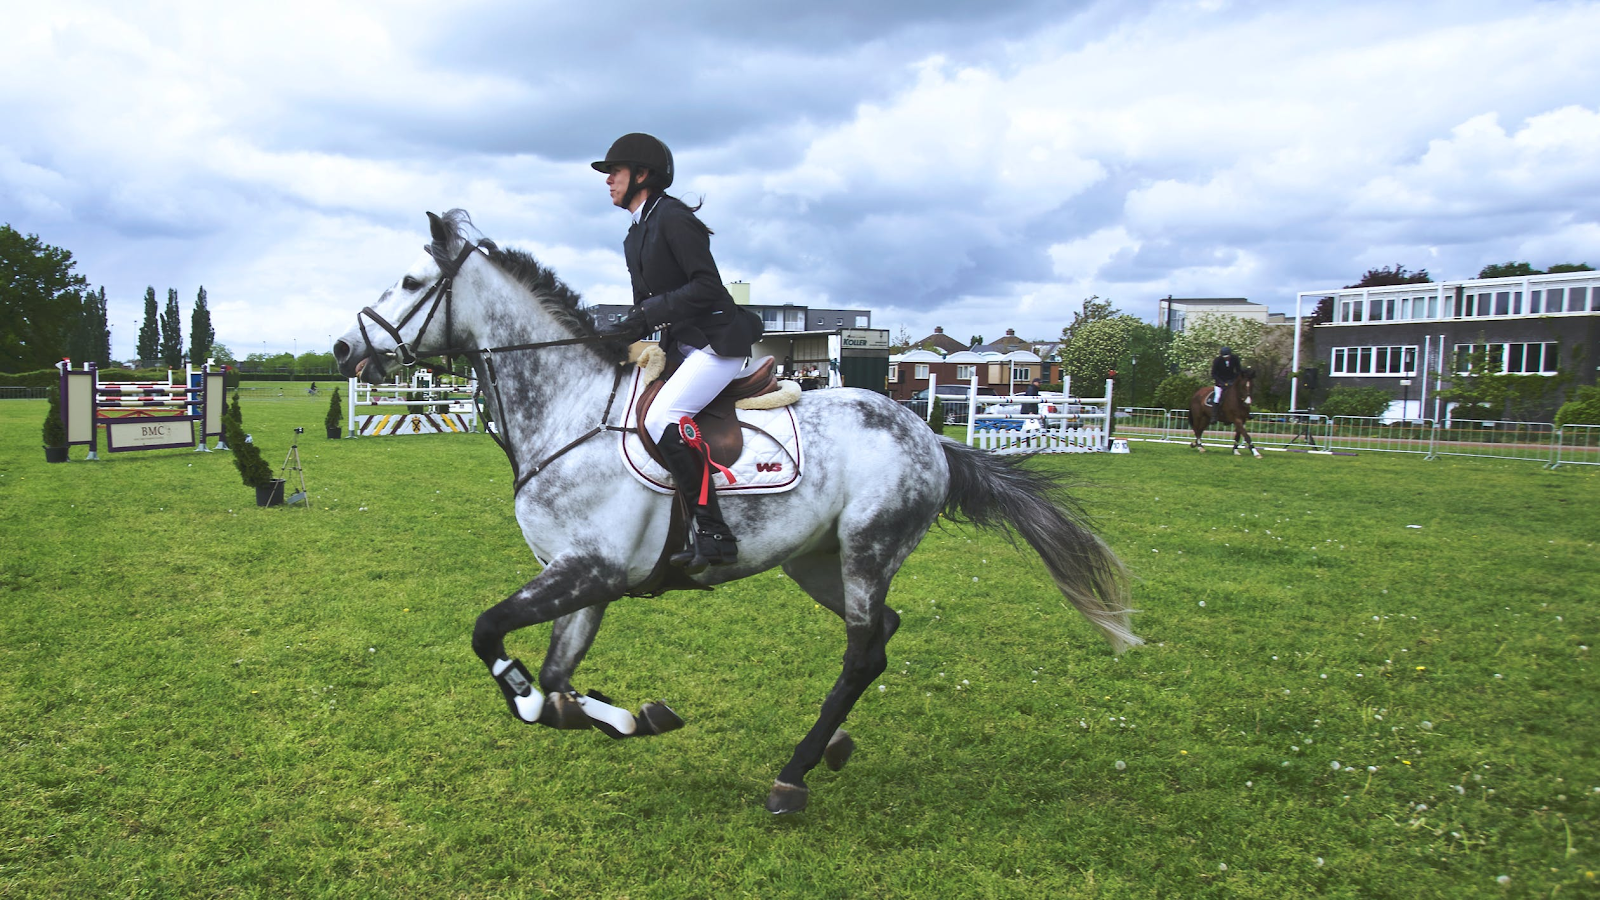 child horse riding on a  grey pony at canter in a jumping ring